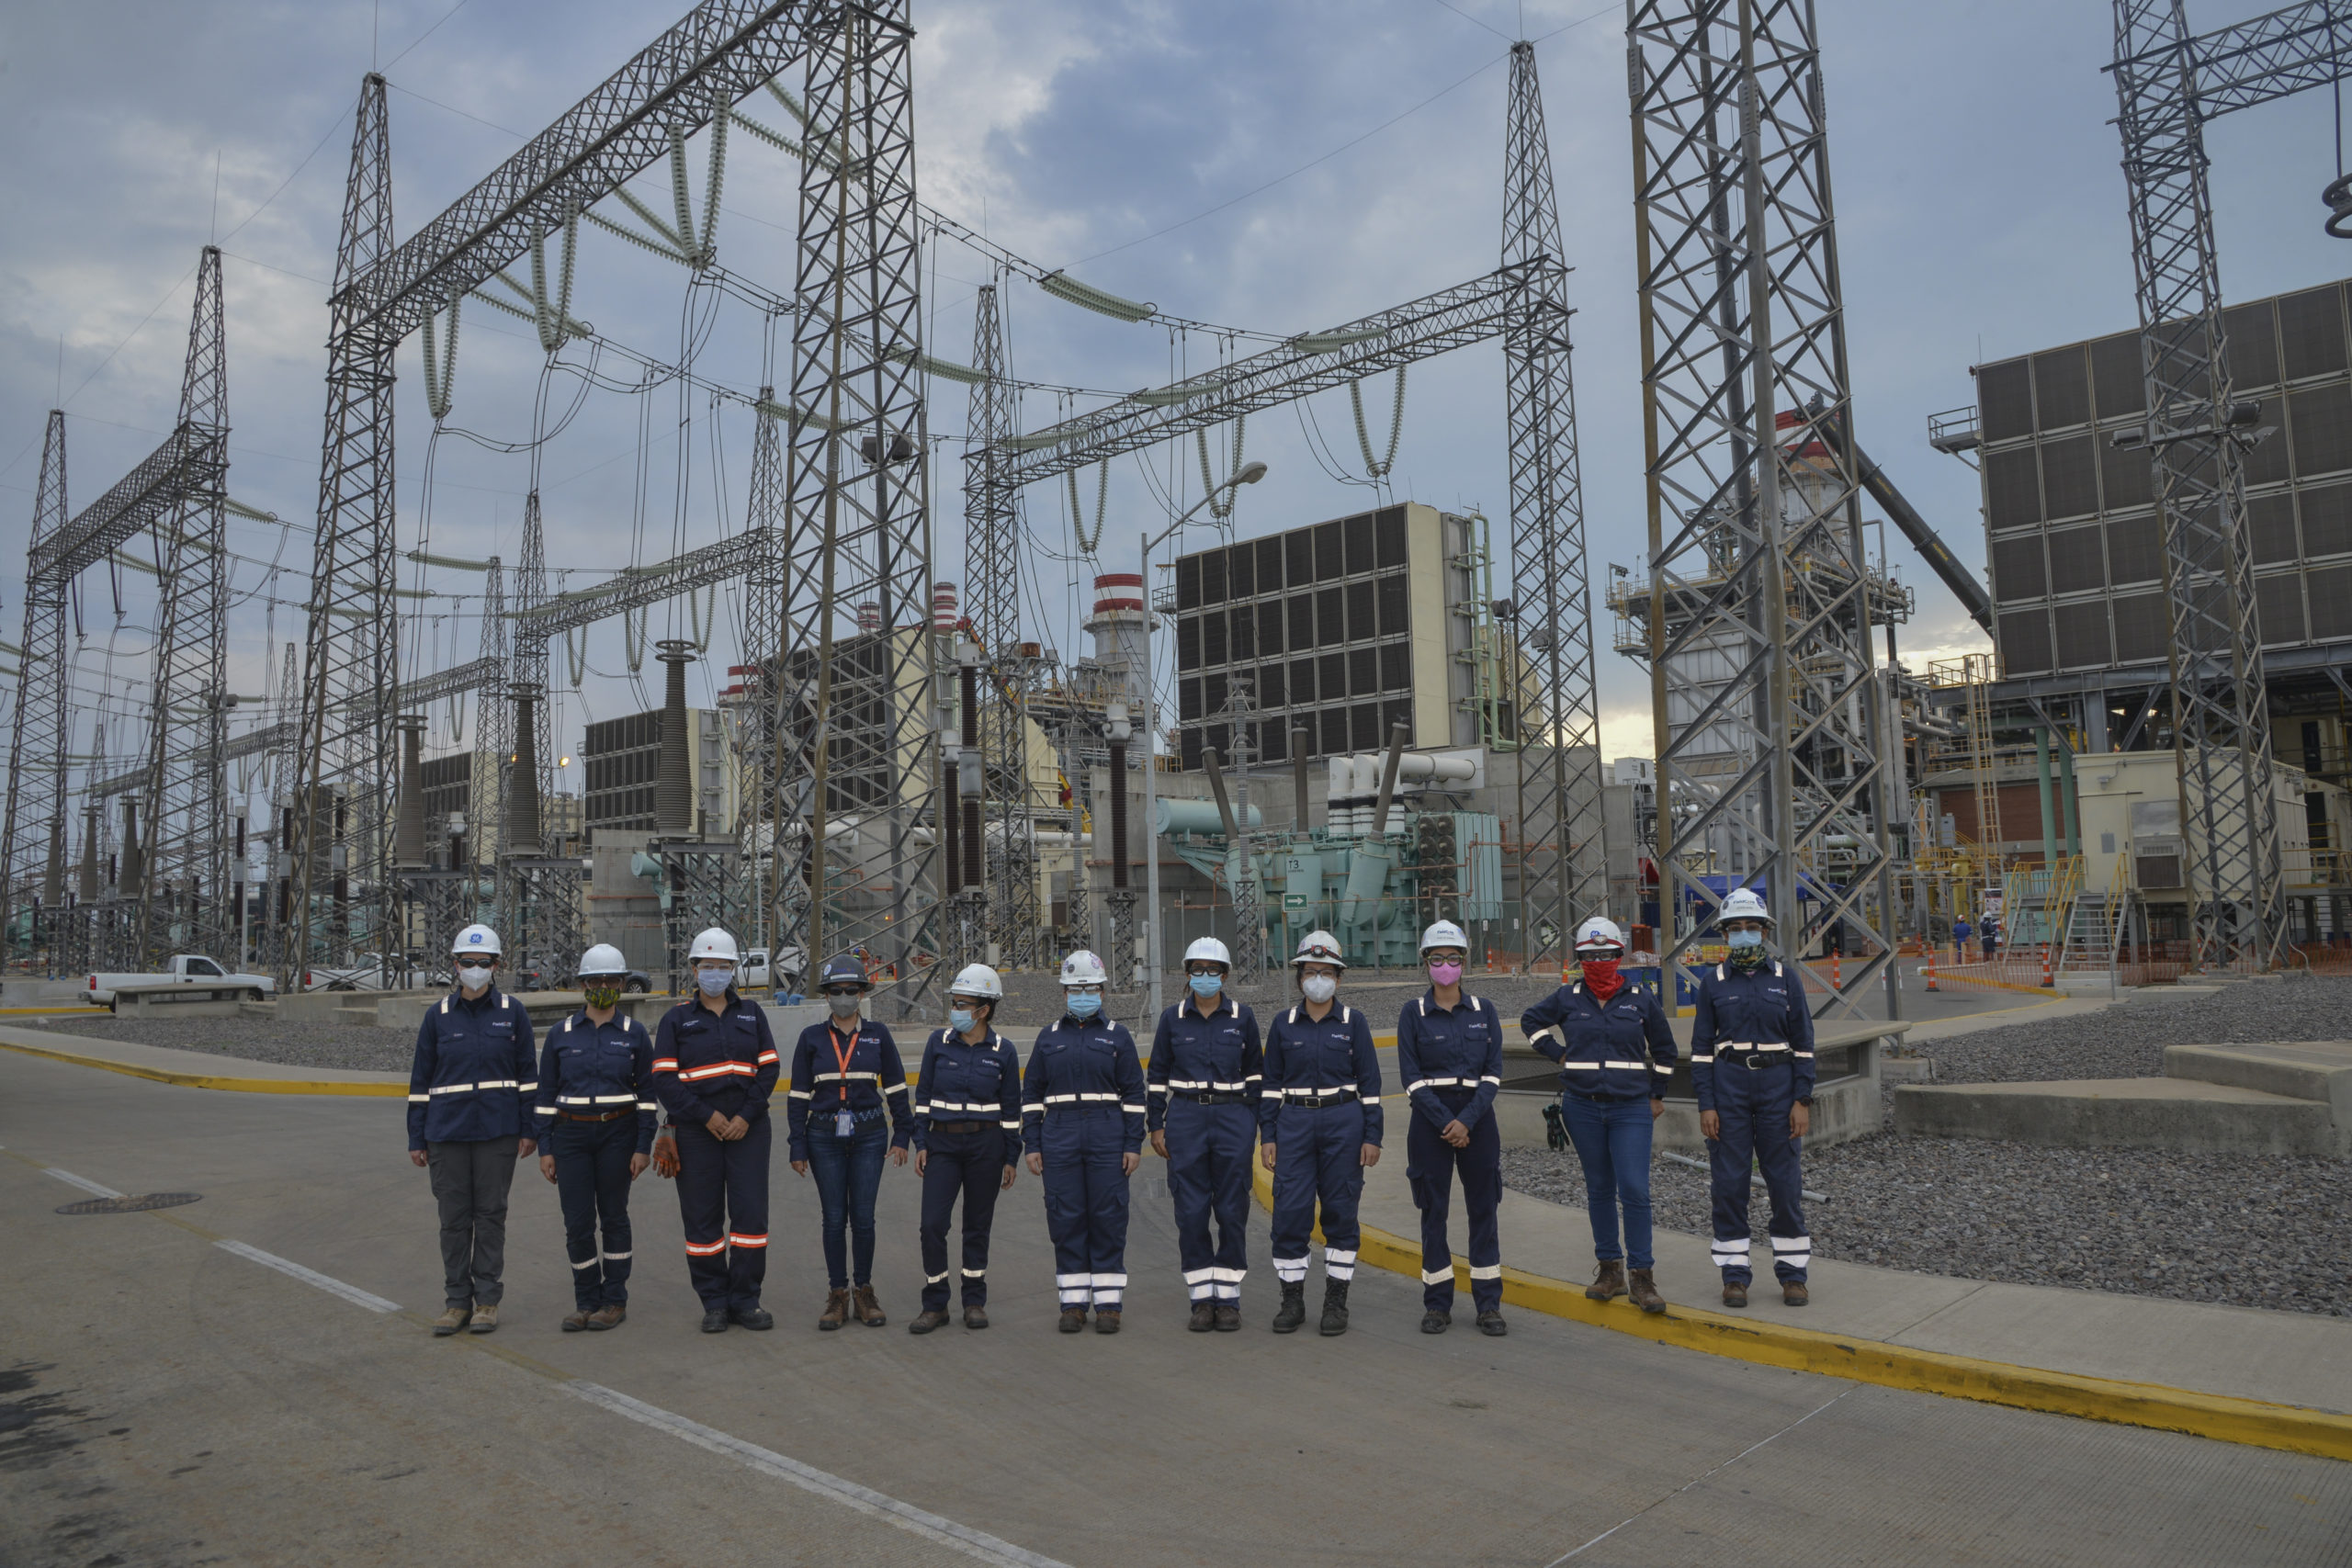 FIELDCORE MAKES HISTORY WITH FIRST EVER ALL FEMALE FIELD ENGINEER CREW IN MEXICO